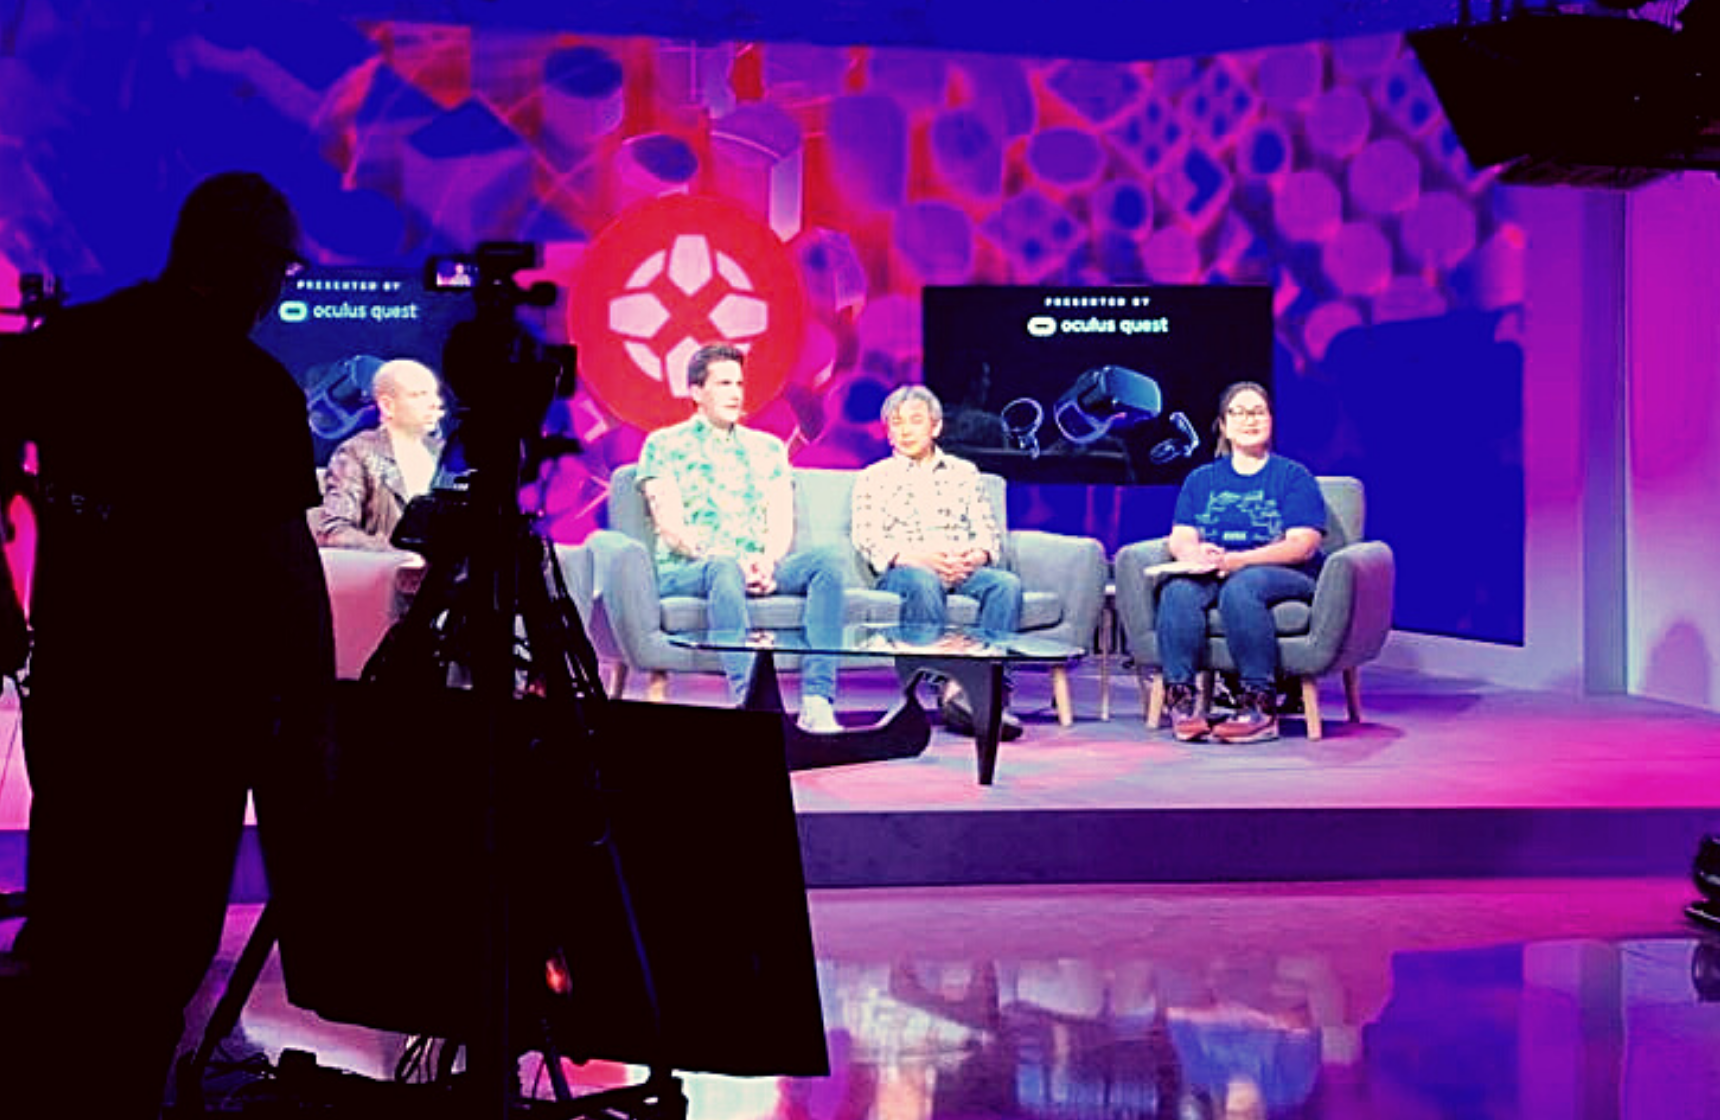 IGN at E3 Set Stage for Talent and Media Interviews Behind the Scenes